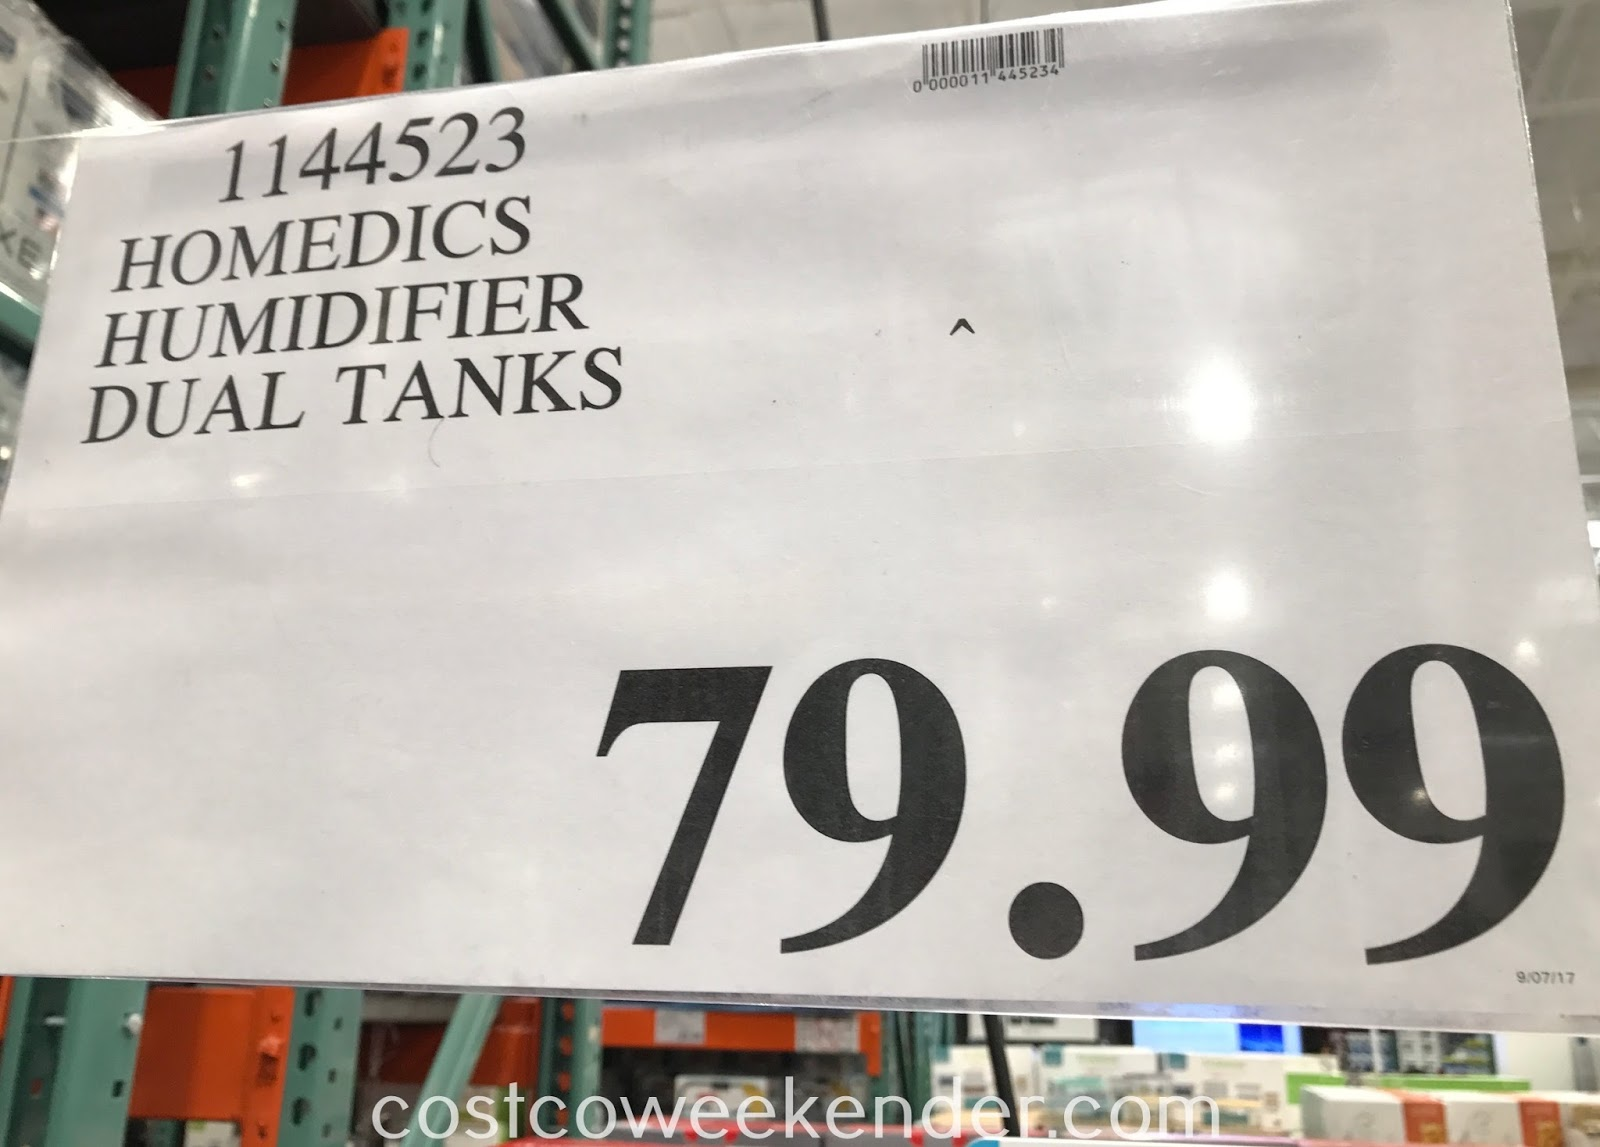 Deal for the HoMedics Total Comfort Ultrasonic Humidifier at Costco